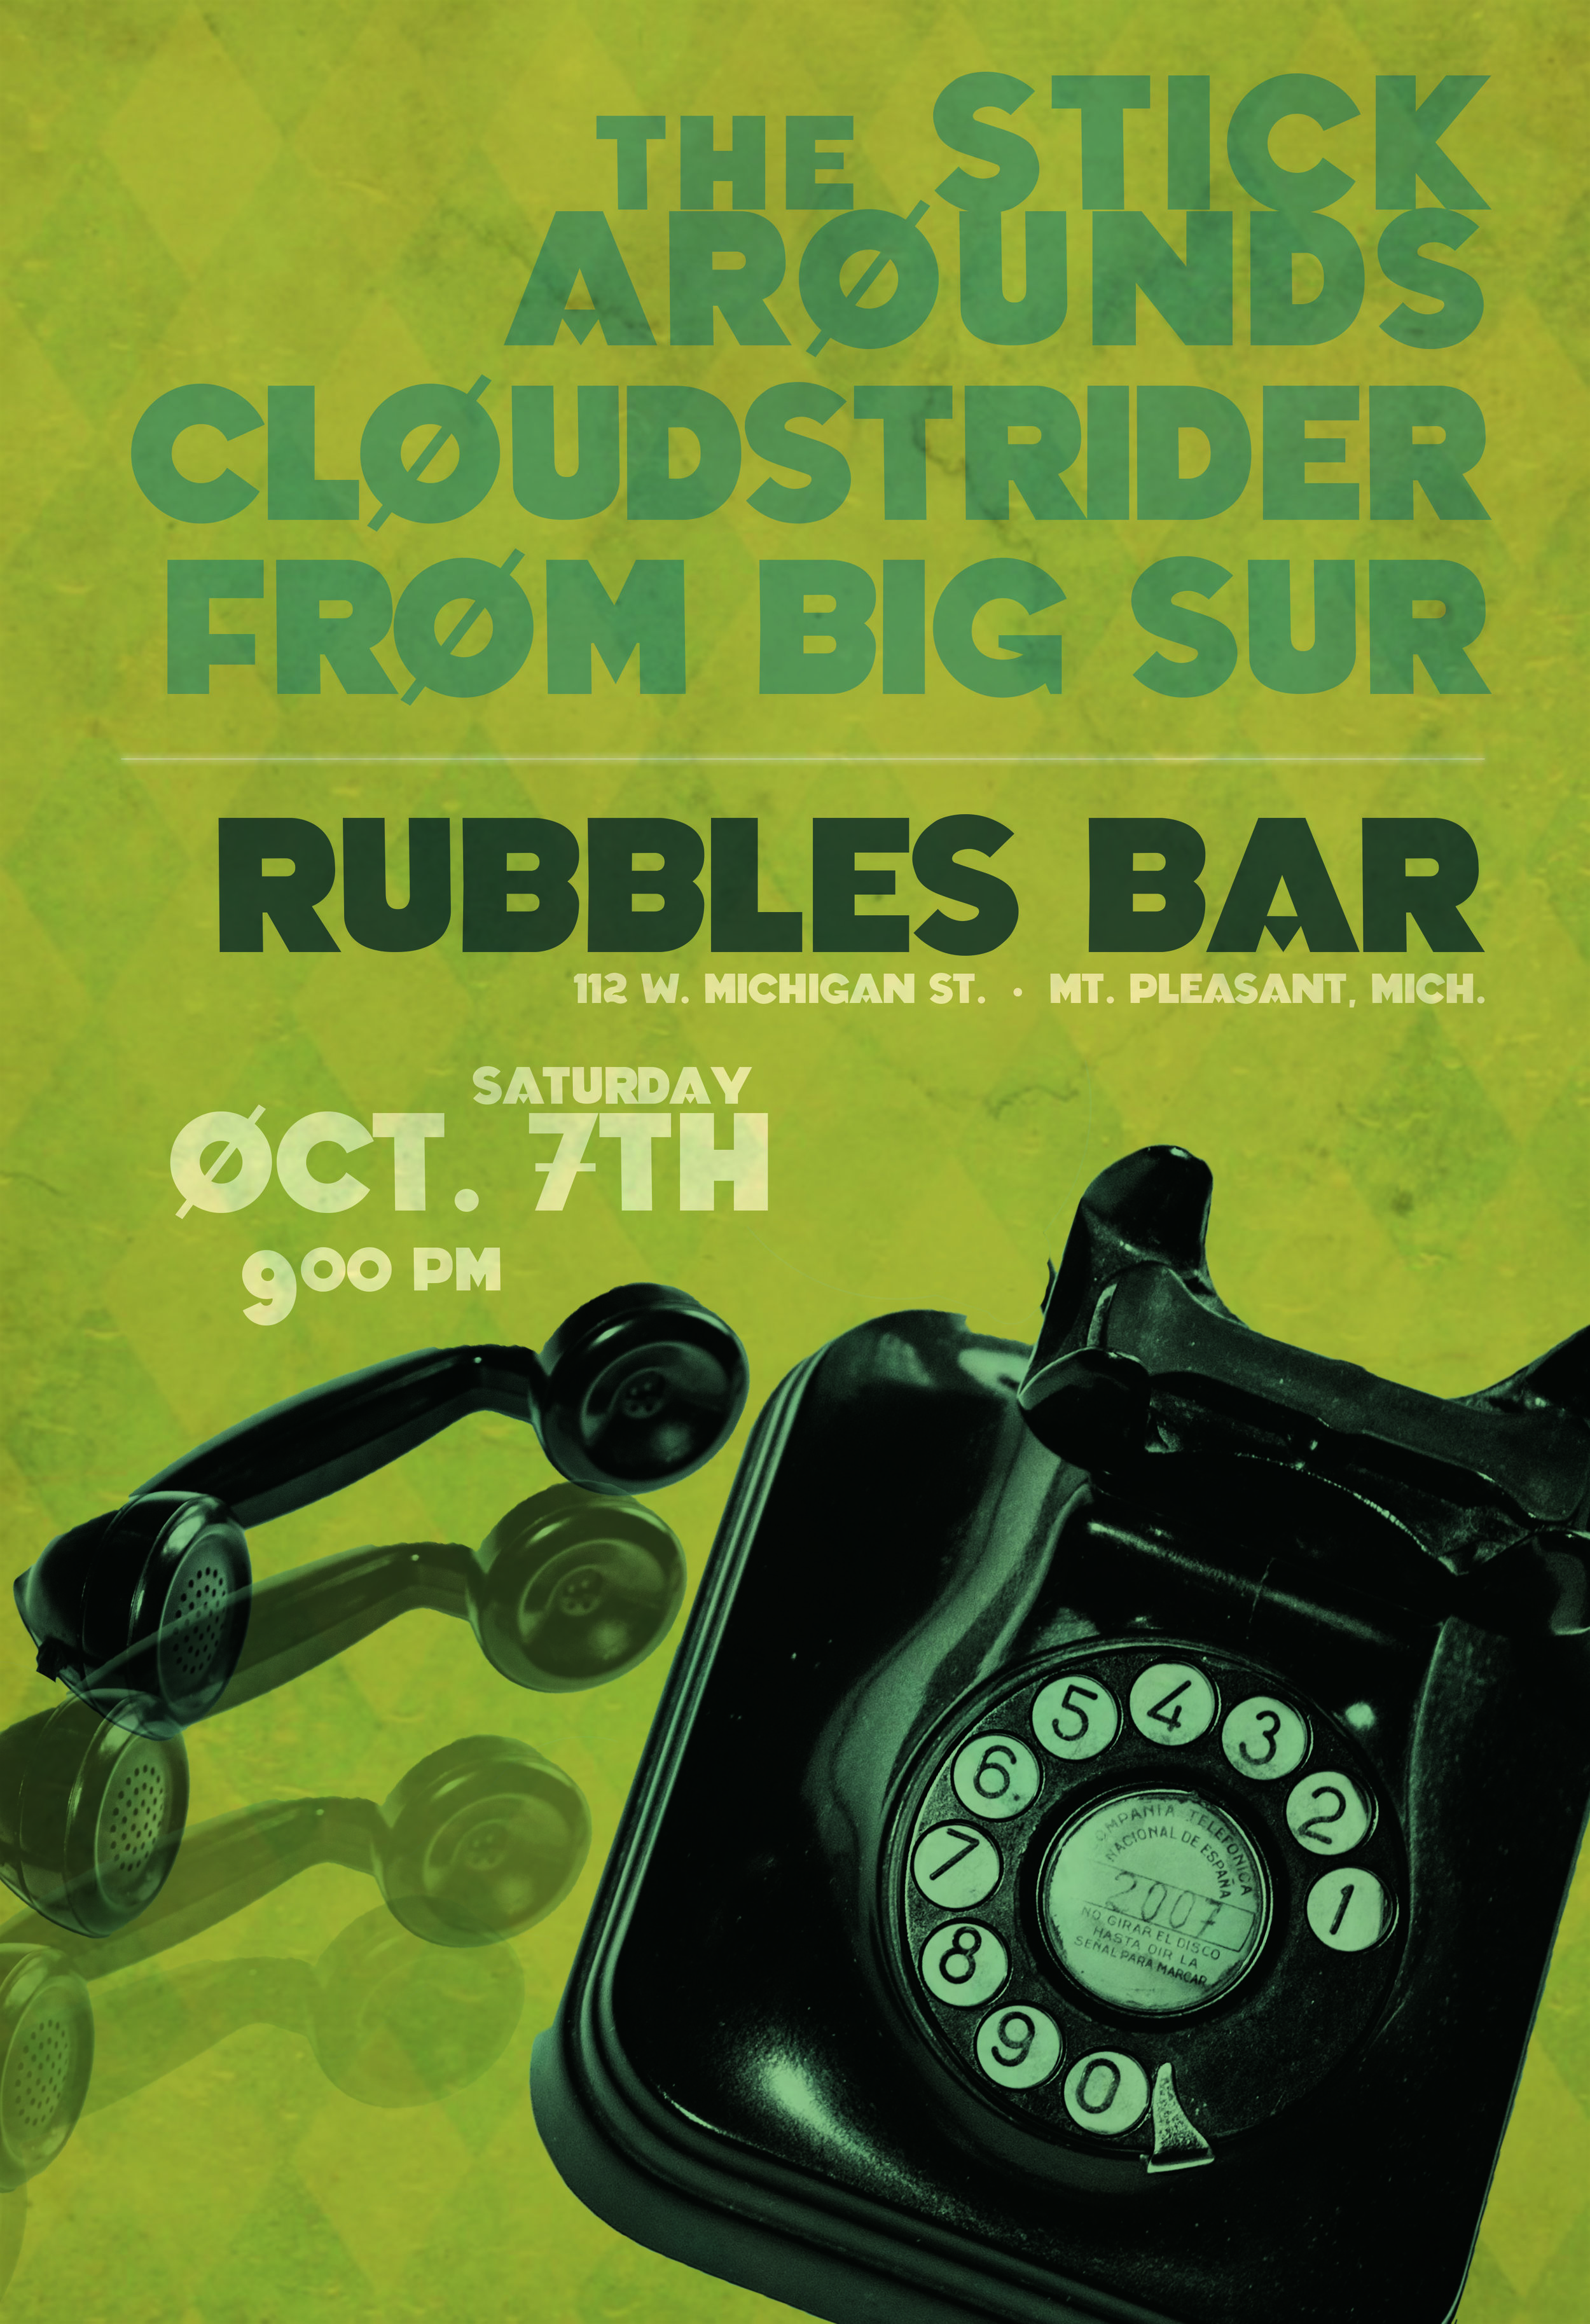 Rubbles Poster - October 2017.jpg